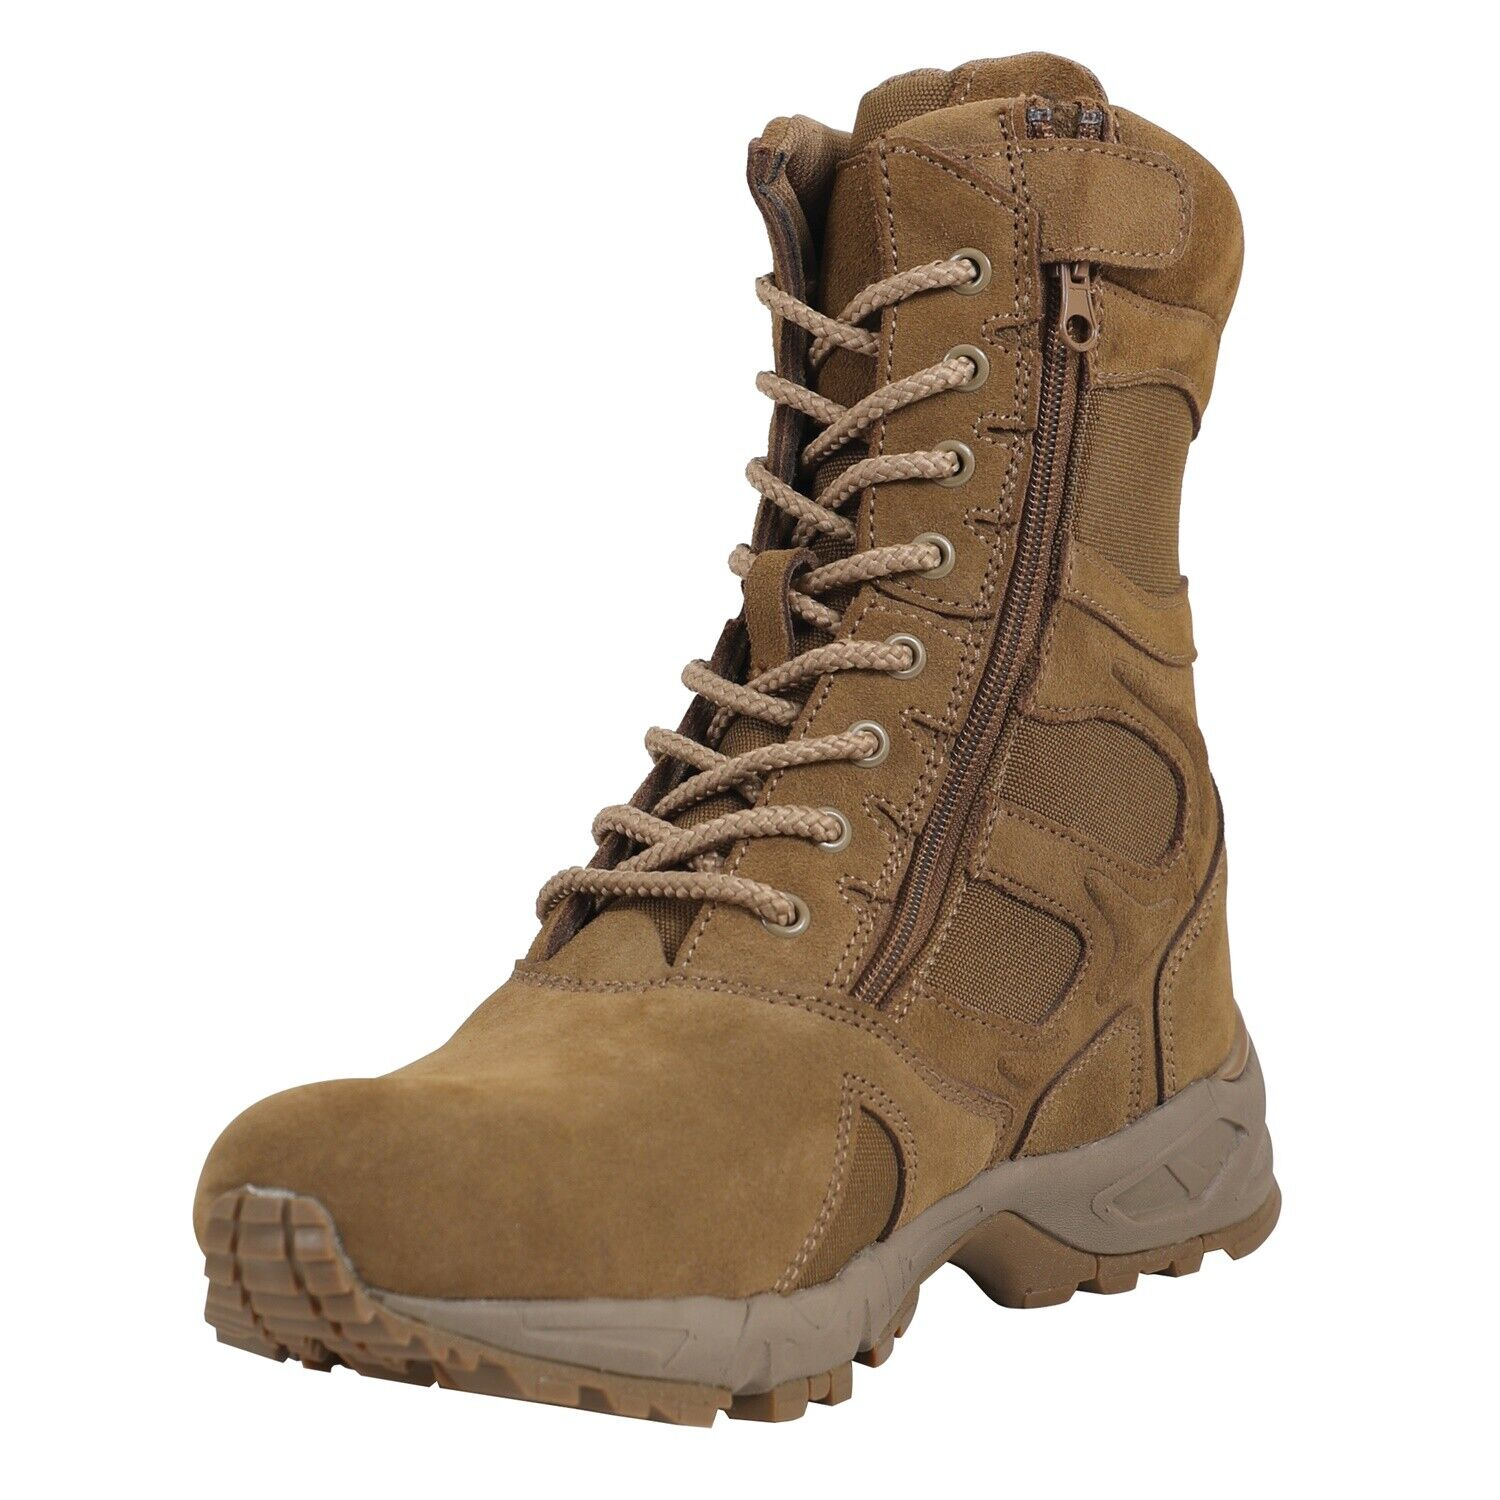 8  Forced Entry Deployment Boots Side Zipper AR 670-1 Coyote Brown redhco 5763